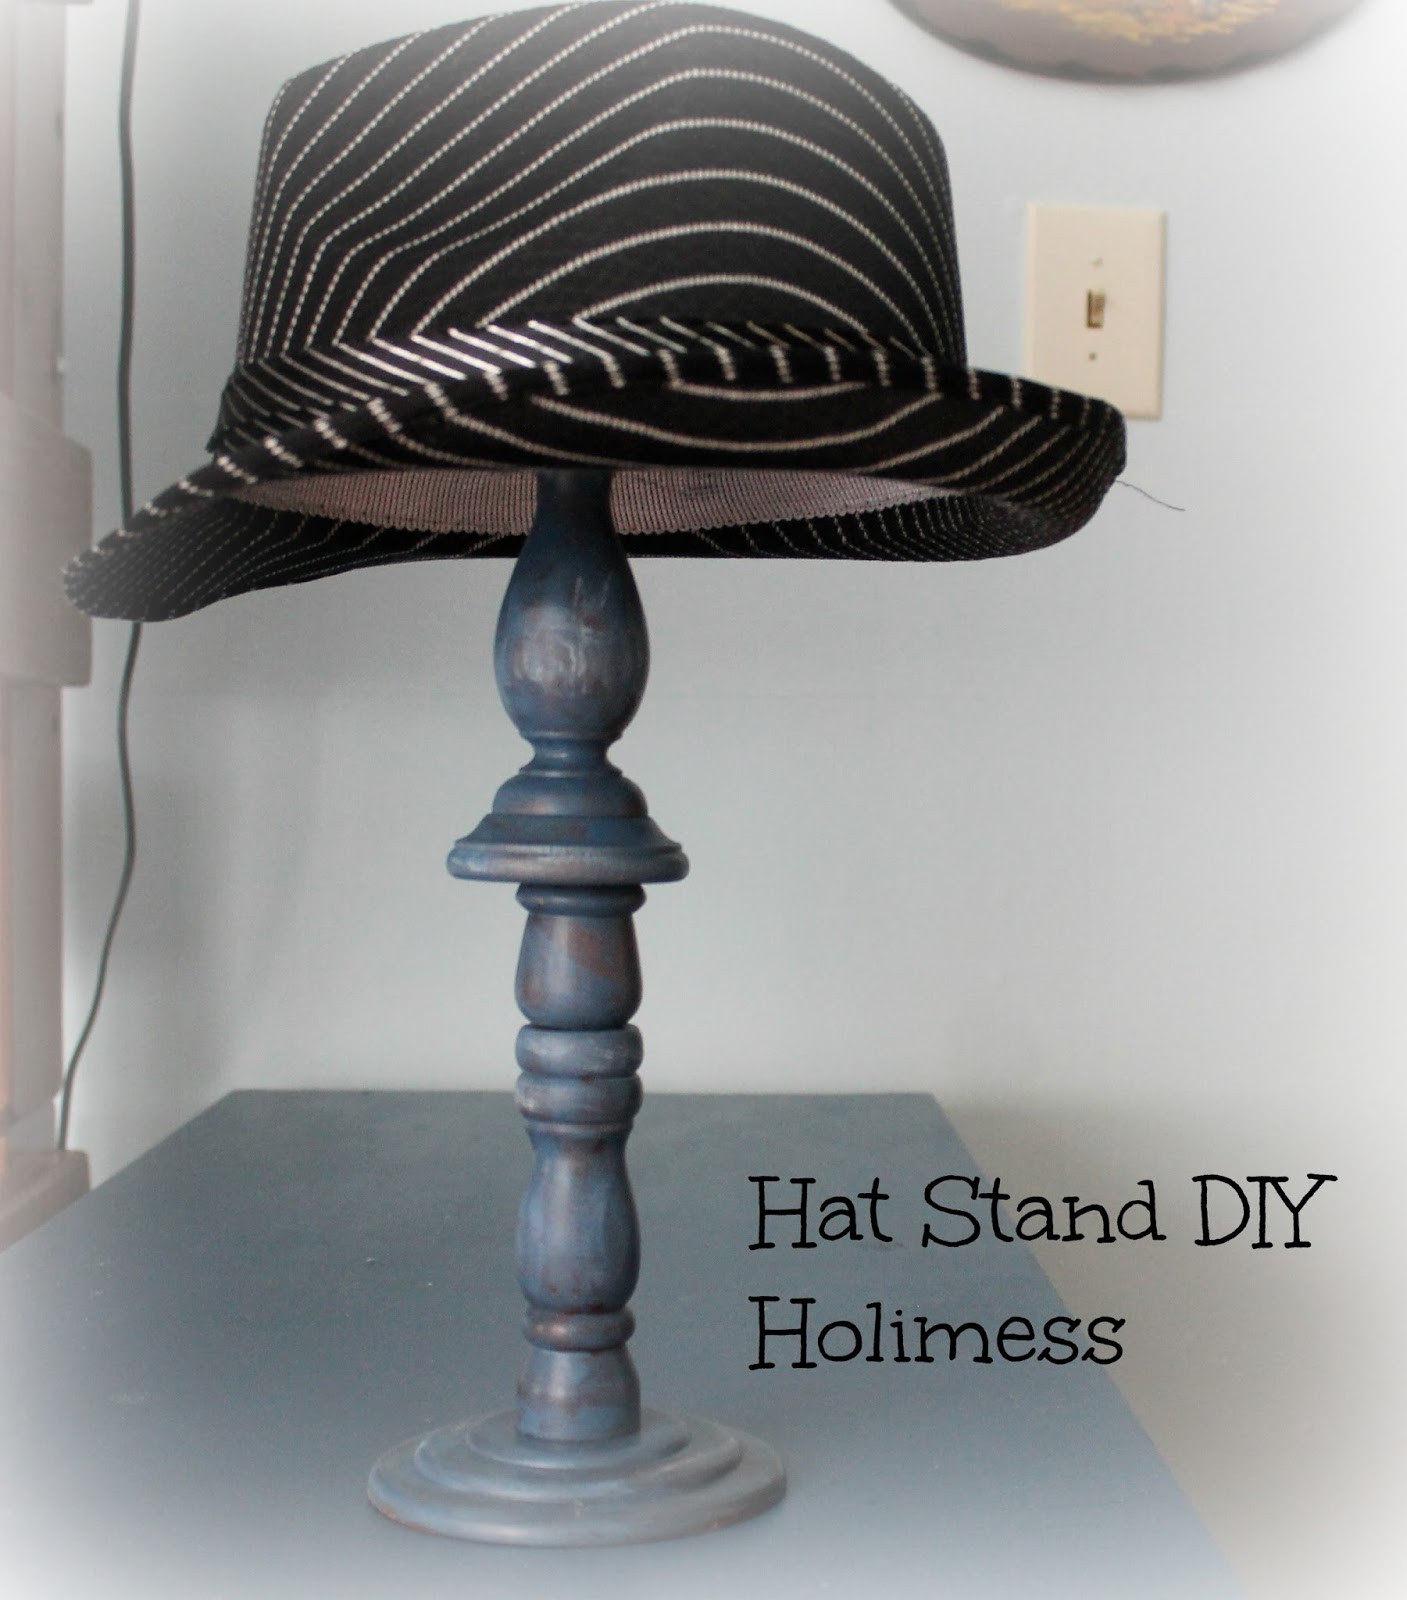 Best ideas about DIY Hat Stand . Save or Pin HoliMess Hat Stand DIY Now.